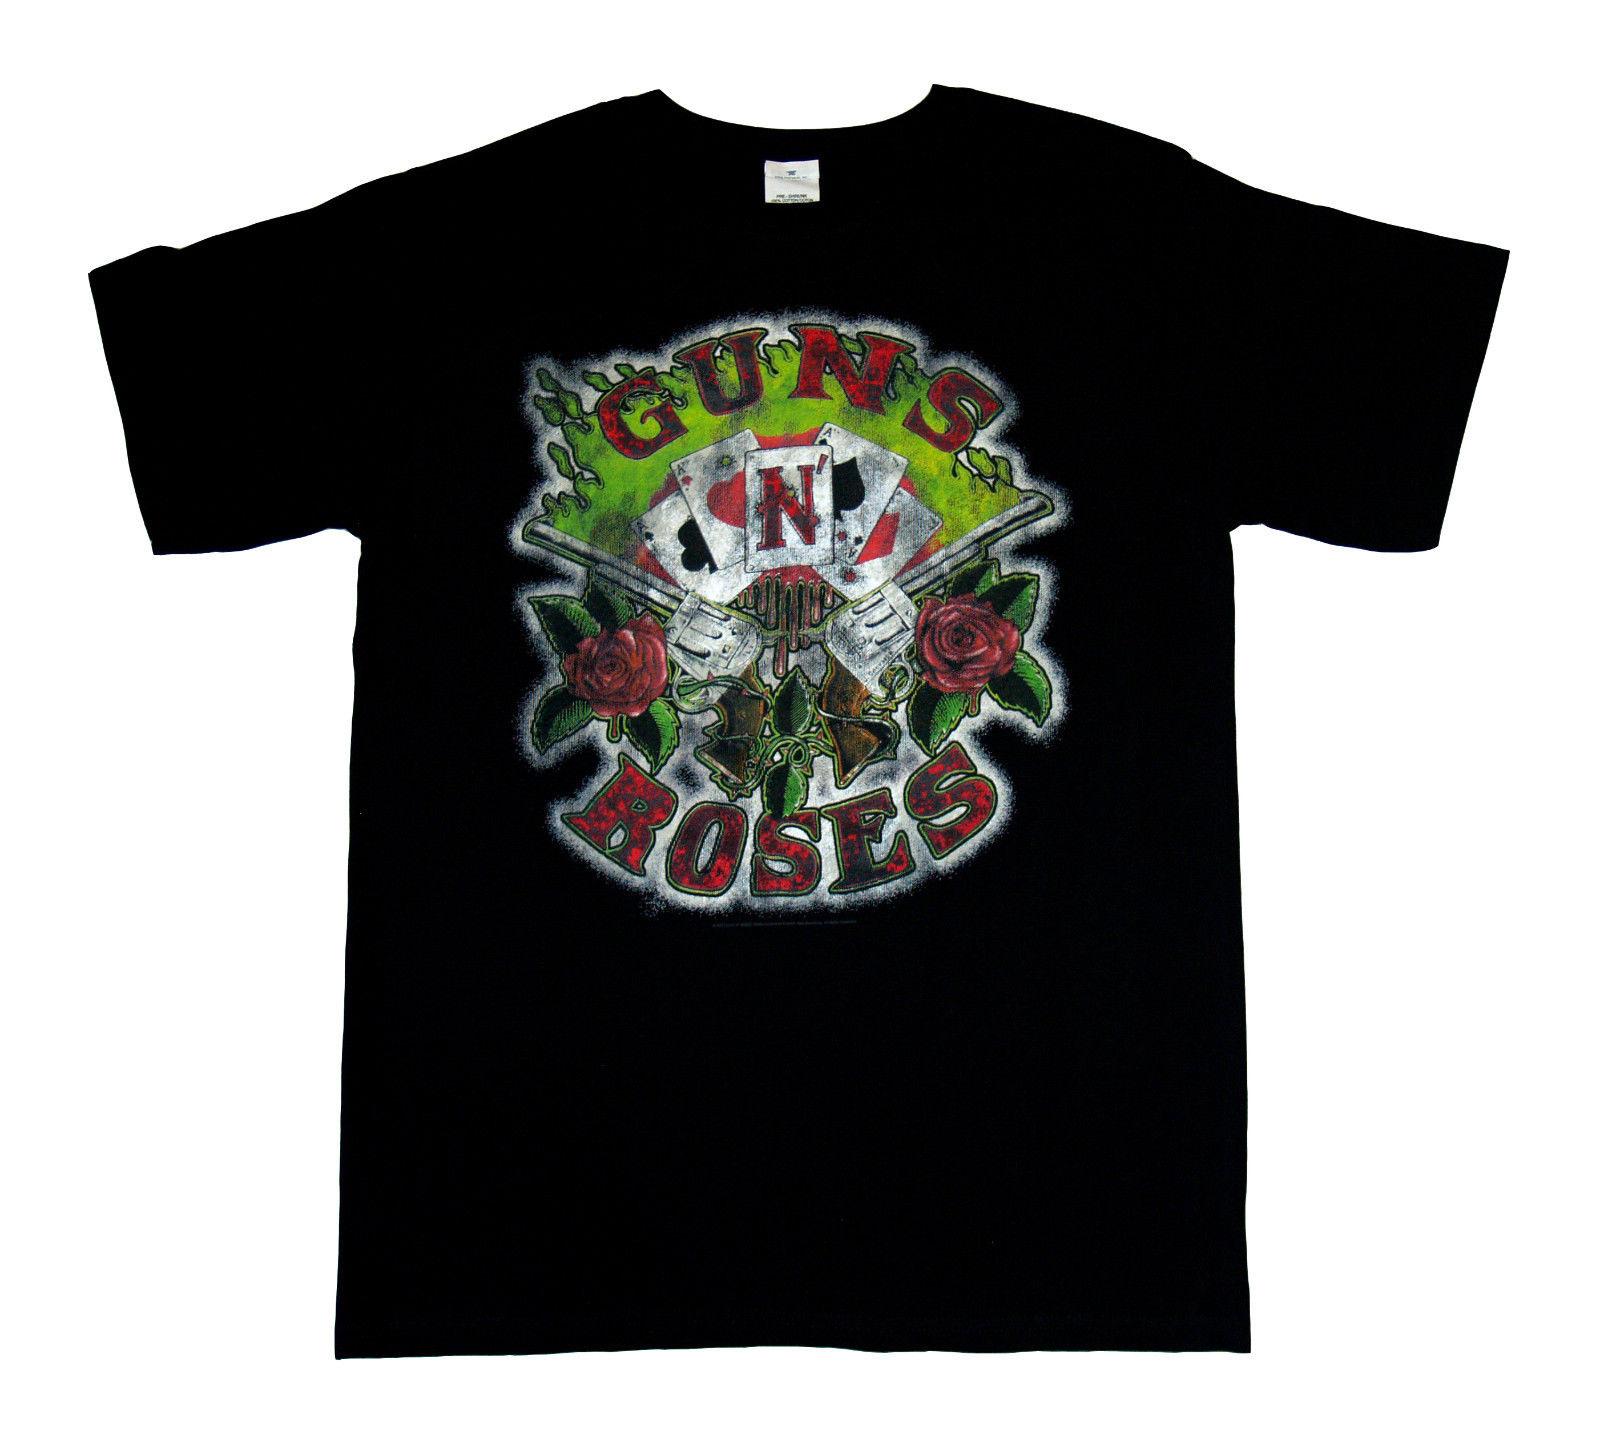 GUNS N ROSES - Cards - Official T SHIRT Sizes S-M-L-XL-2XL Brand New HardRock ...